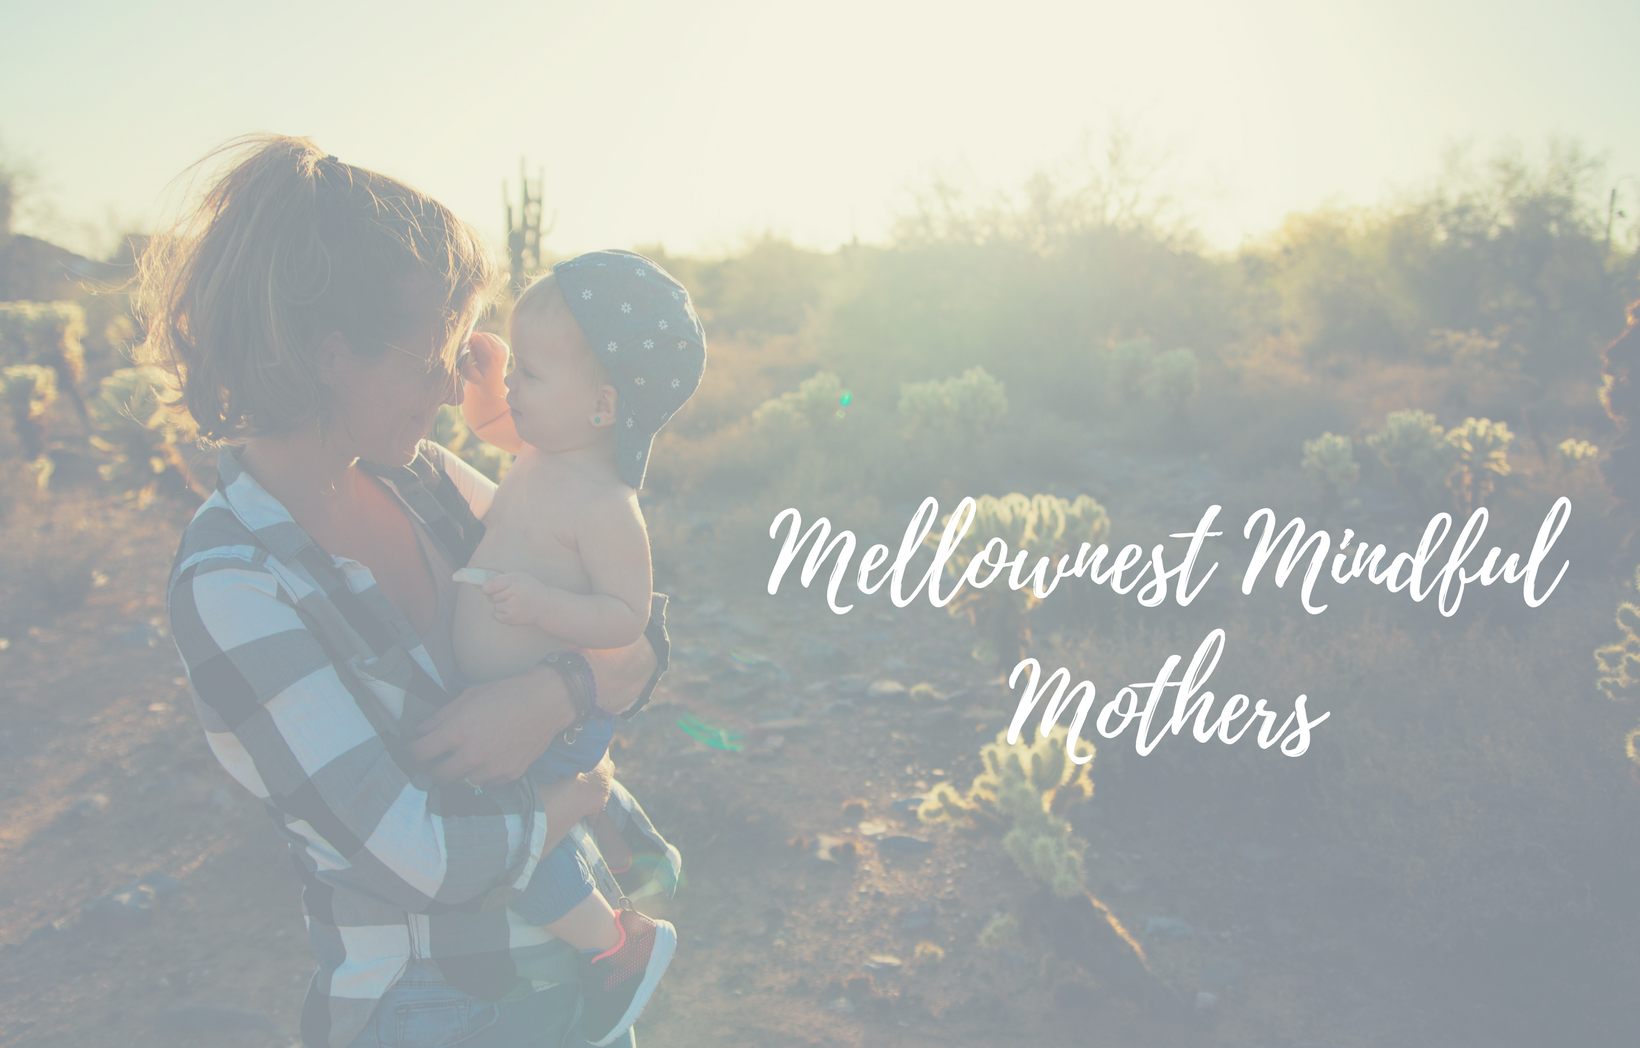 Want to join us in having more conversations like this one with hundreds of other like-minded parents?  - Then head on over to our Mellownest Mindful Mothers Facebook group. We're looking forward to seeing you there!